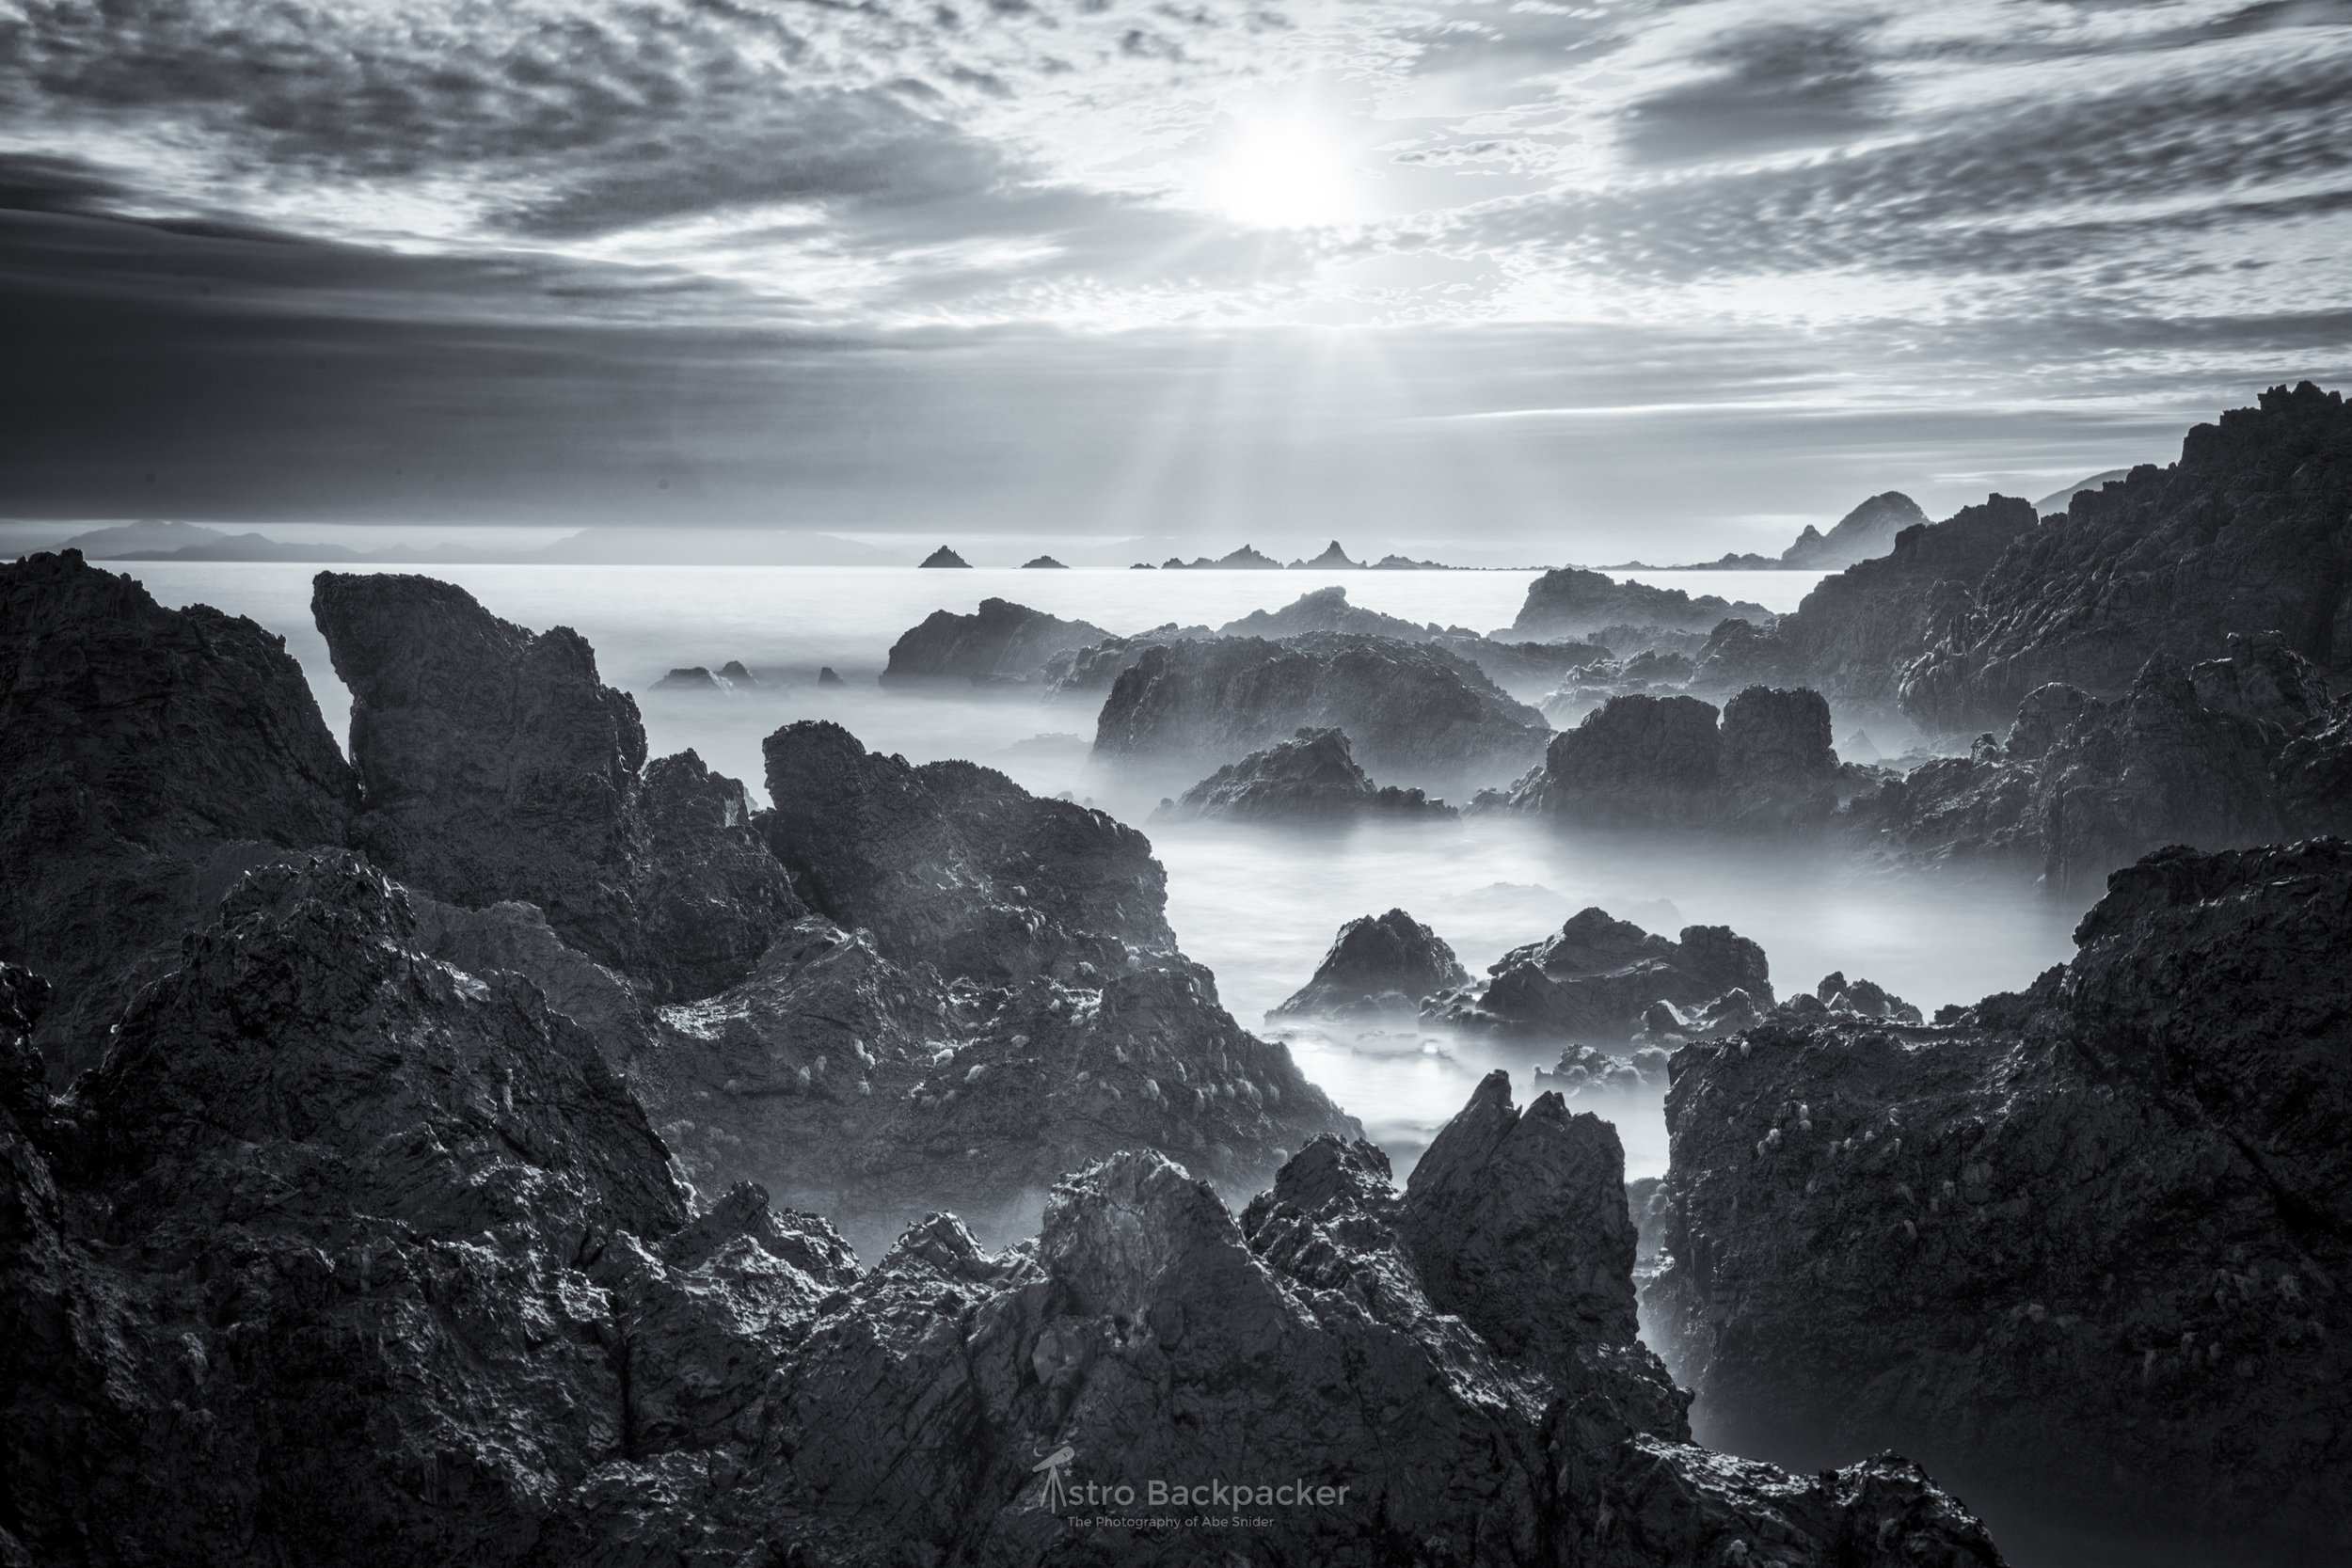 A seascape on the south coast of Wellington, New Zealand. The harsh lighting conditions and moody clouds made this image one I've wanted to share but issues in the sky and haze on the rocks made me hold back. By adding the artificial sun rays and pulling back haze and more details in the rocks this image is now what I've wanted it to be. This is the biggest reason I don't delete RAW files. You never know what capability is going to come in the future to help you with your images.   Wellington, New Zealand